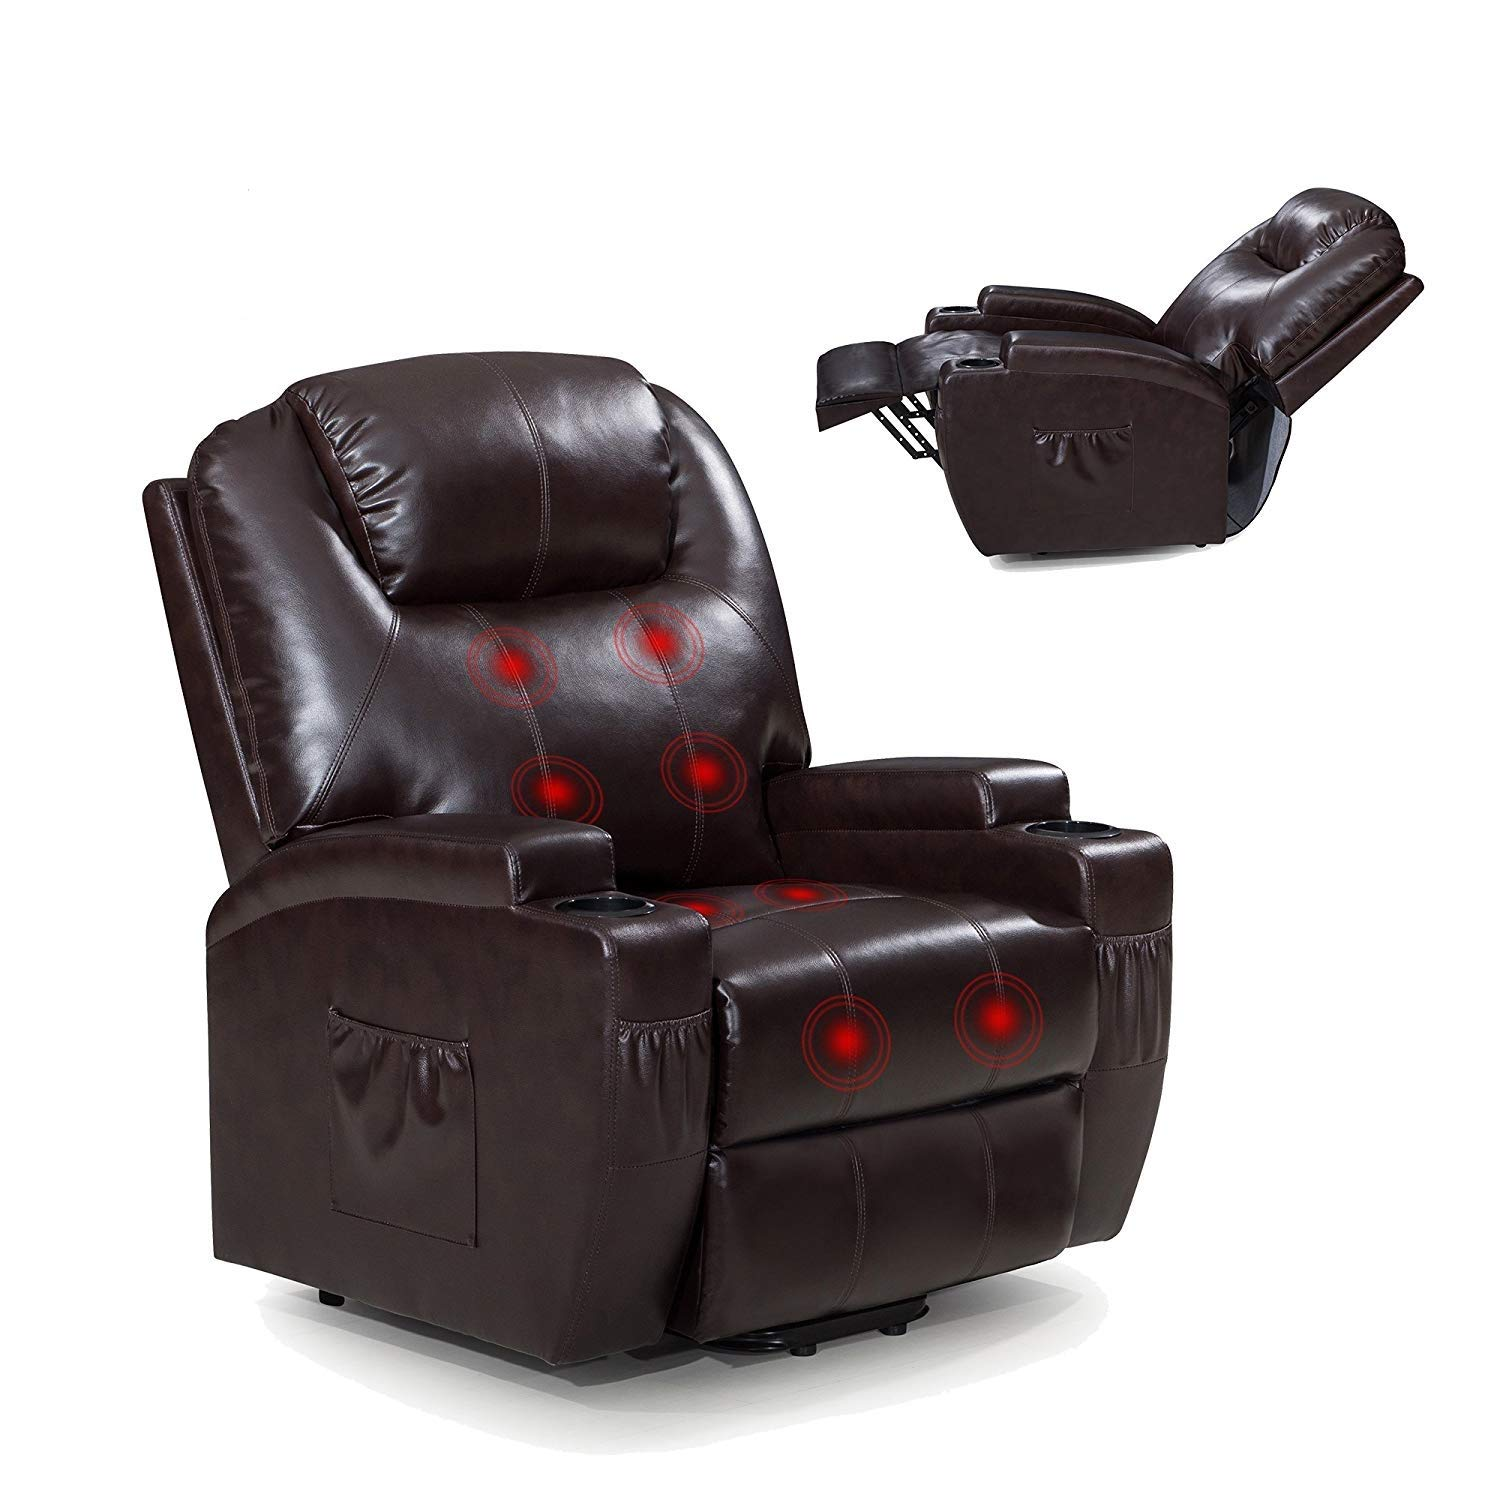 Power Lift Recliner Sofa Chair with Massage and Heating, Luxurious Bonded Leather Lounge Living Room Chair, Brown by windaze